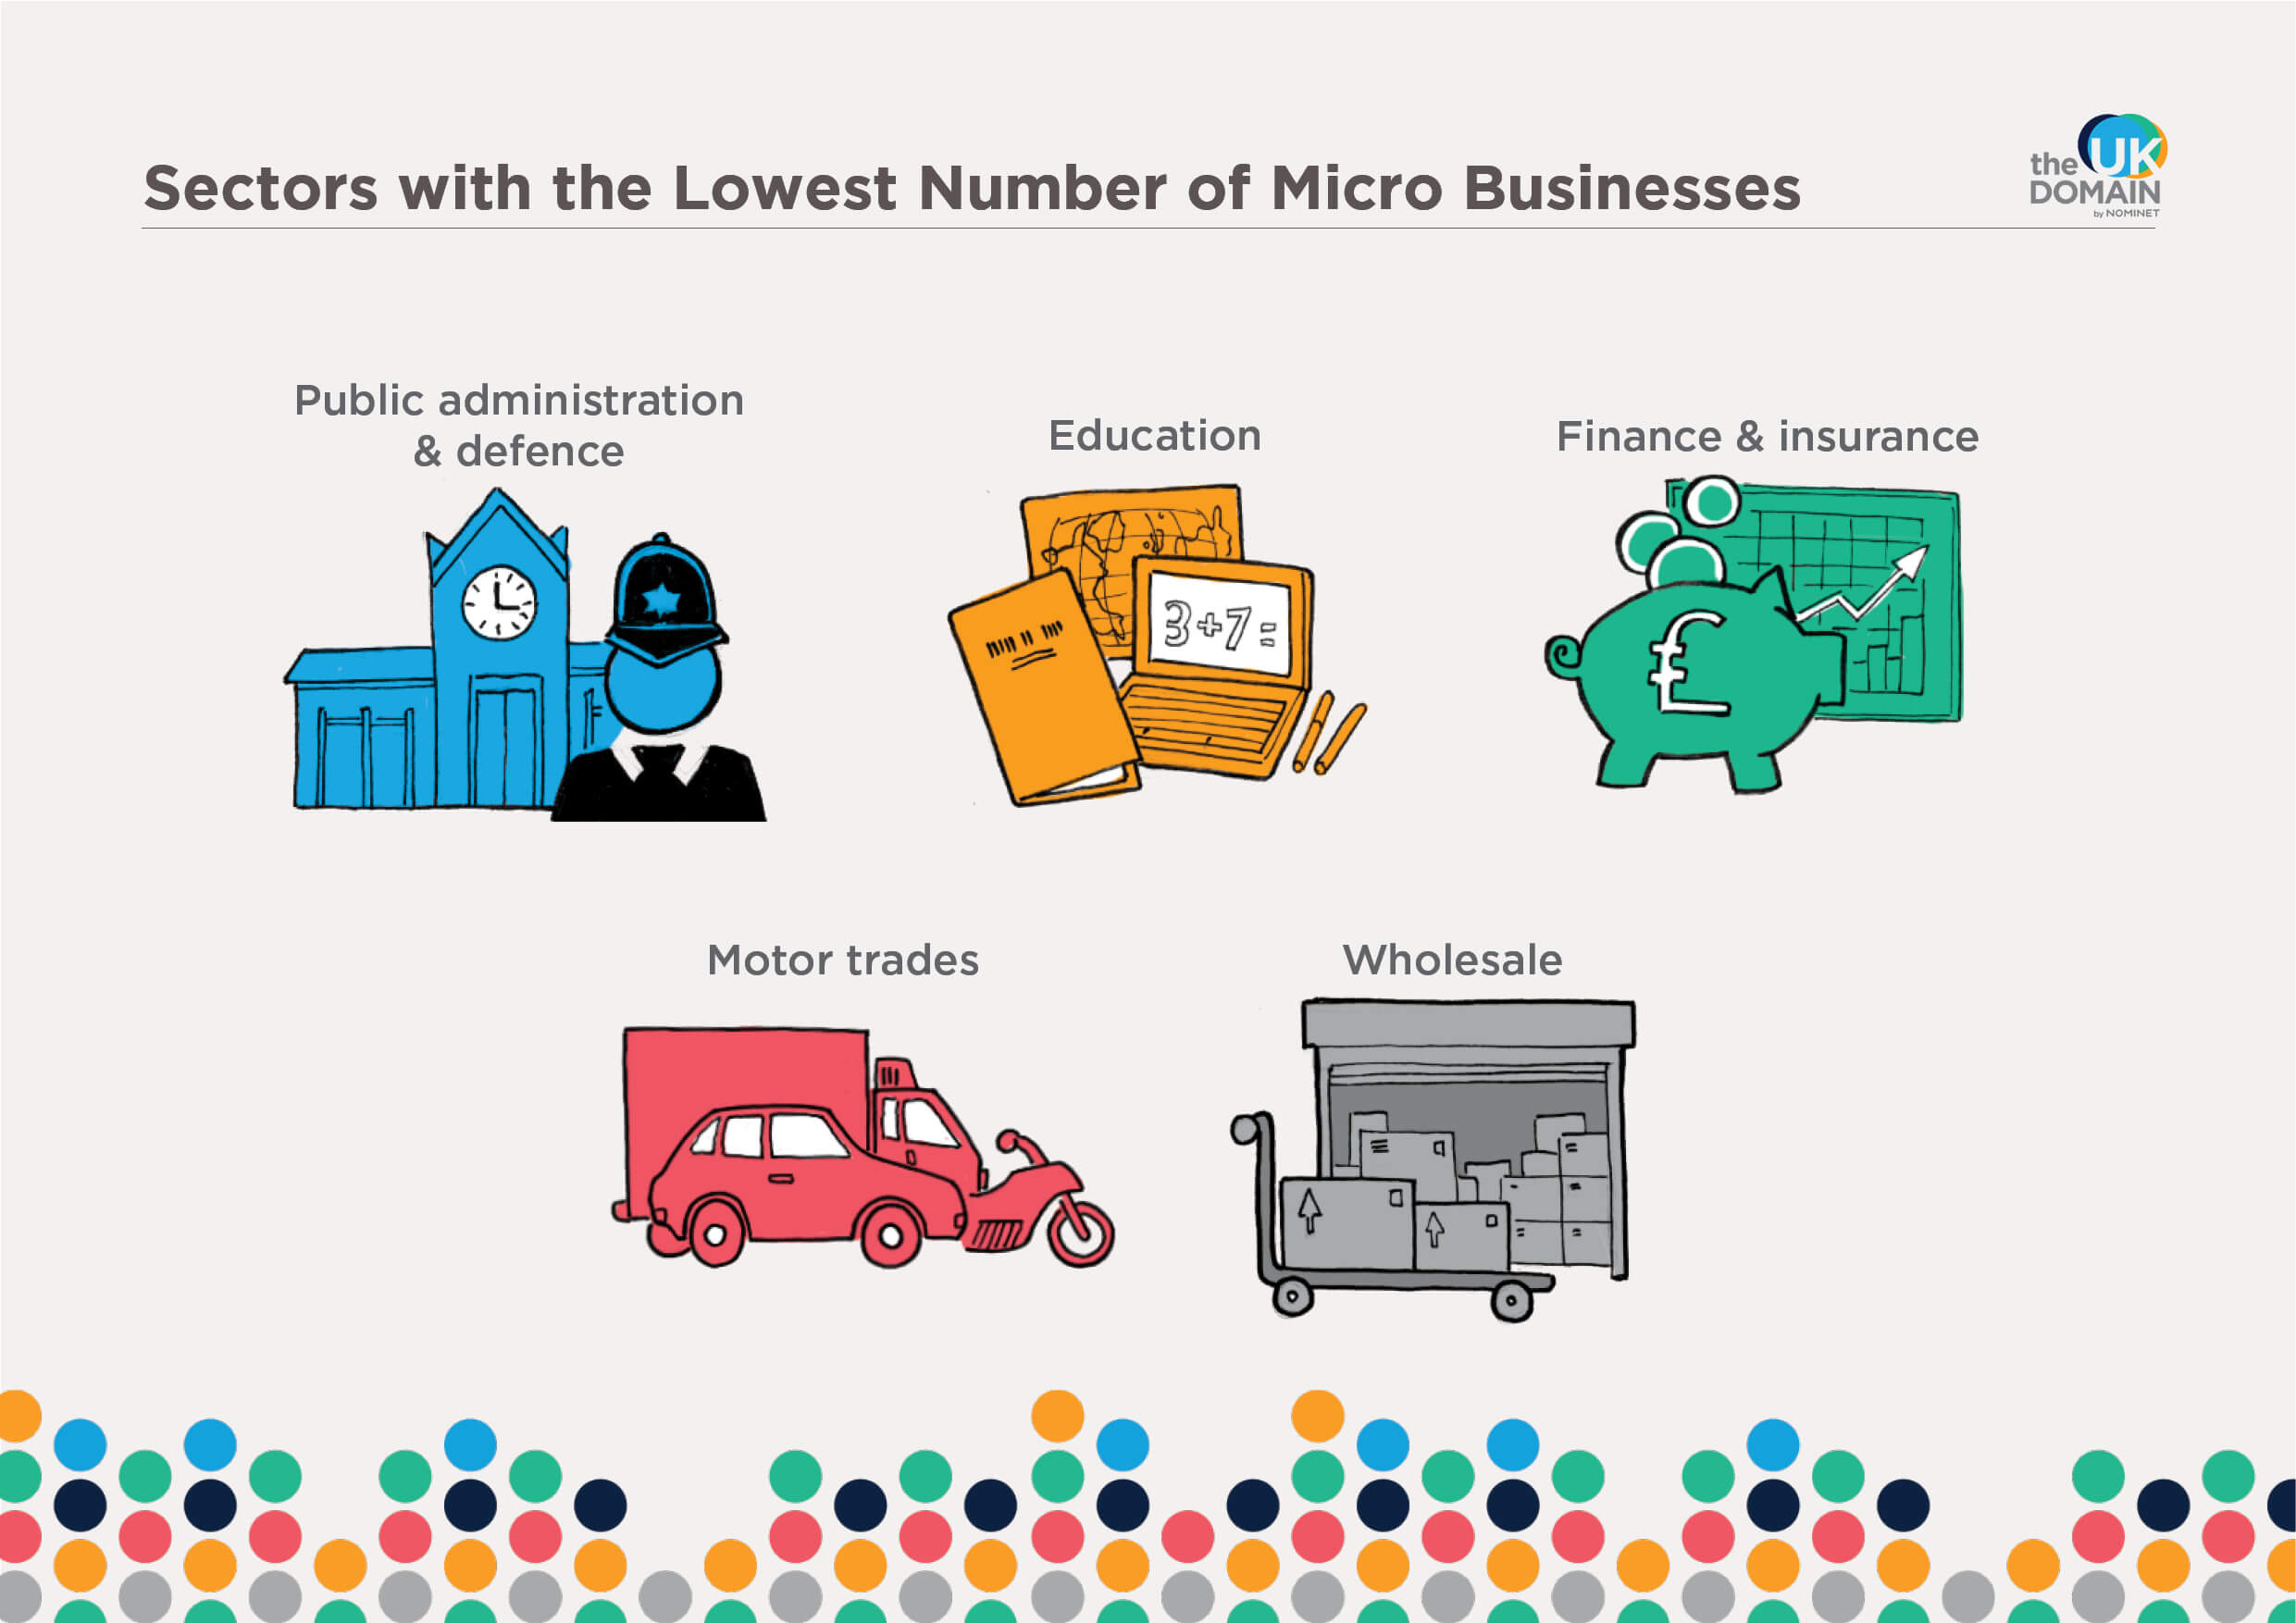 Sectors with the lowest number of micro businesses